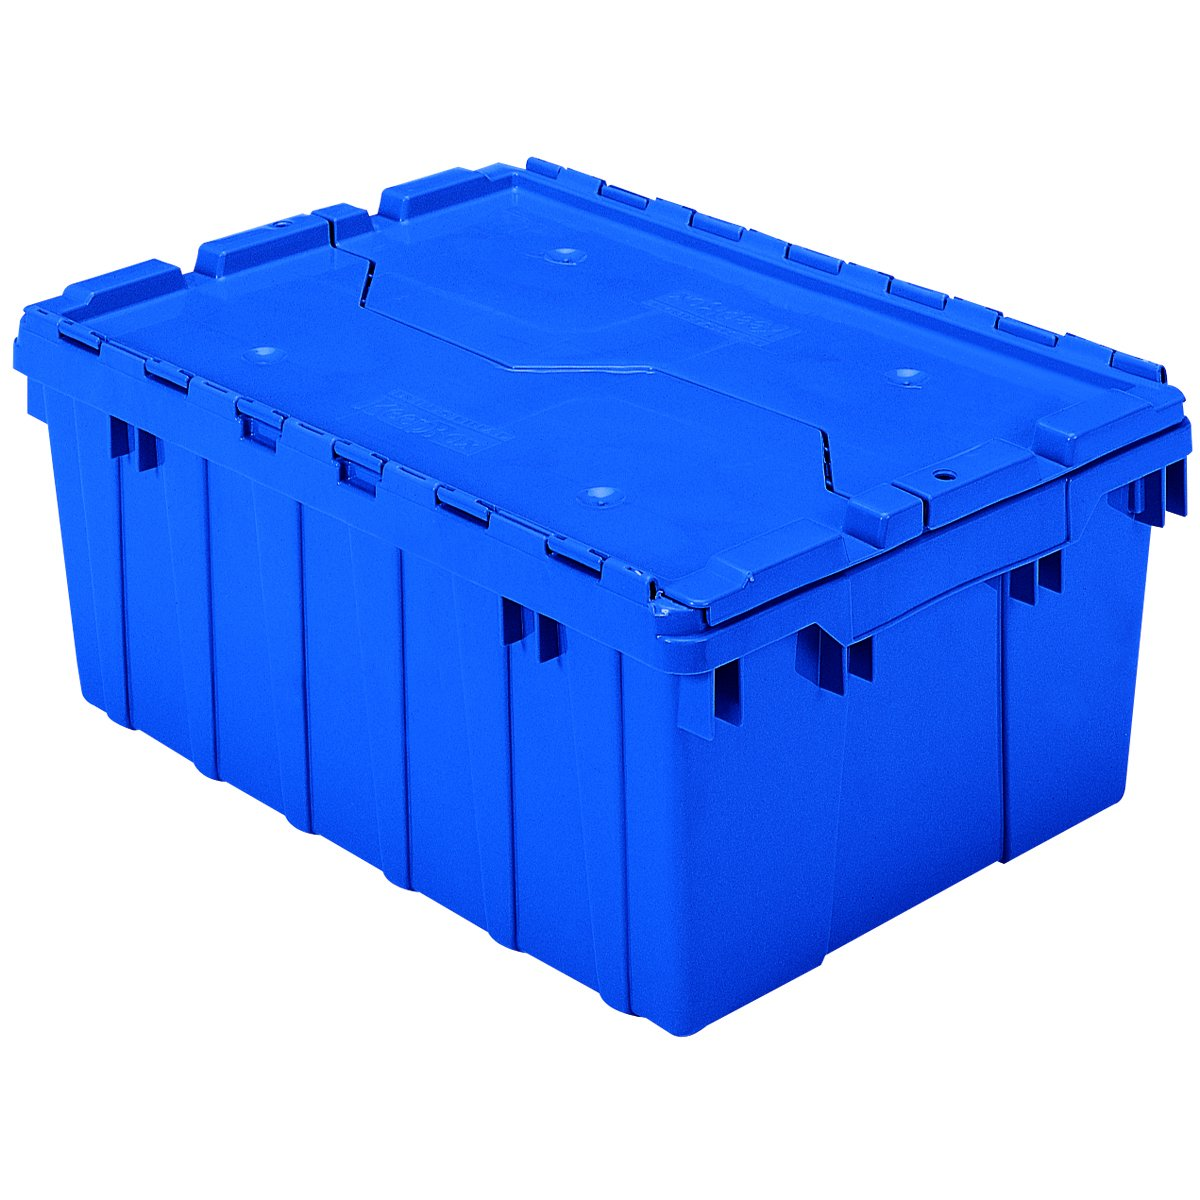 Akro-Mils 39085 Plastic Storage and Distribution Container Tote with Hinged Lid, 21.5-Inch L by 15-Inch W by 9-Inch H, Blue, Pack of 6 by Akro-Mils